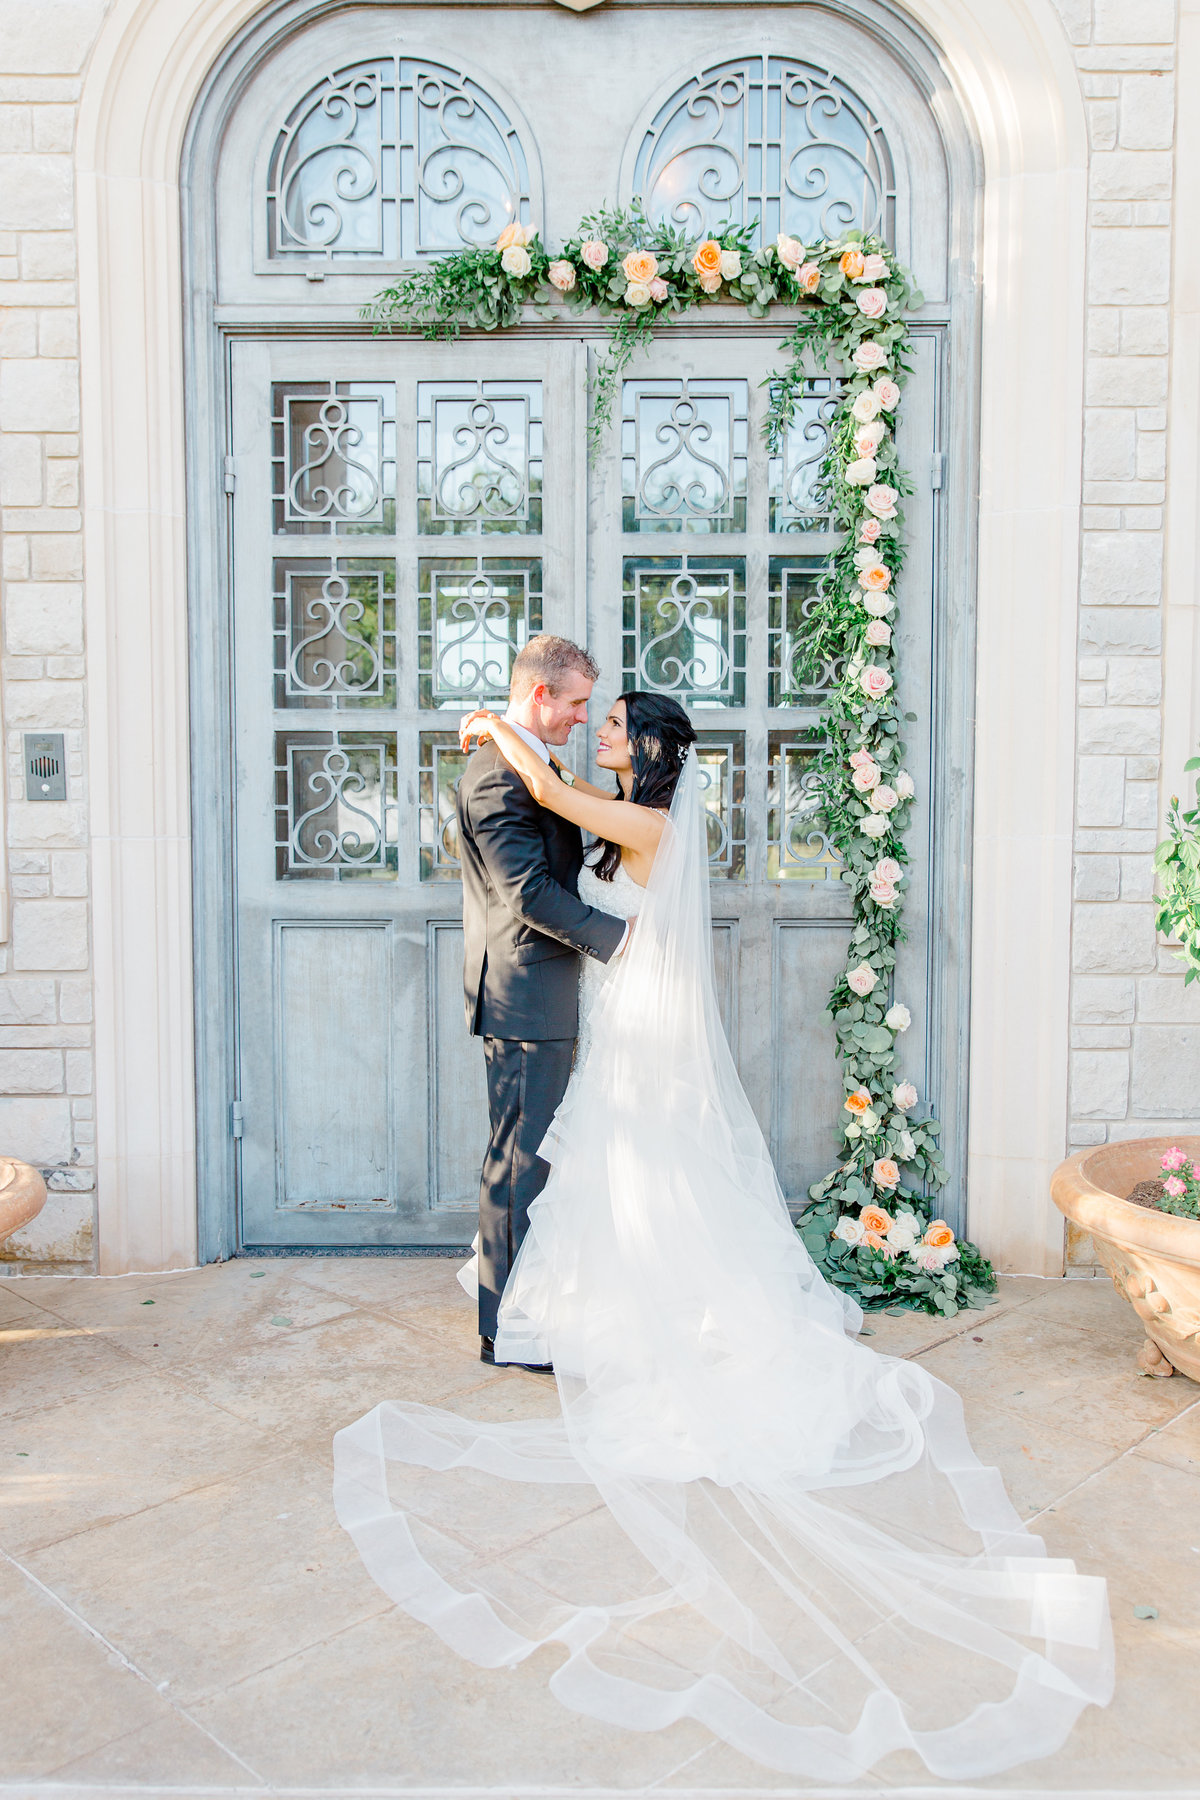 High-Pointe-Mansion-Wedding-Photography-Oklahoma-City-Wedding-Photographer-Holly-Felts-Photography-406